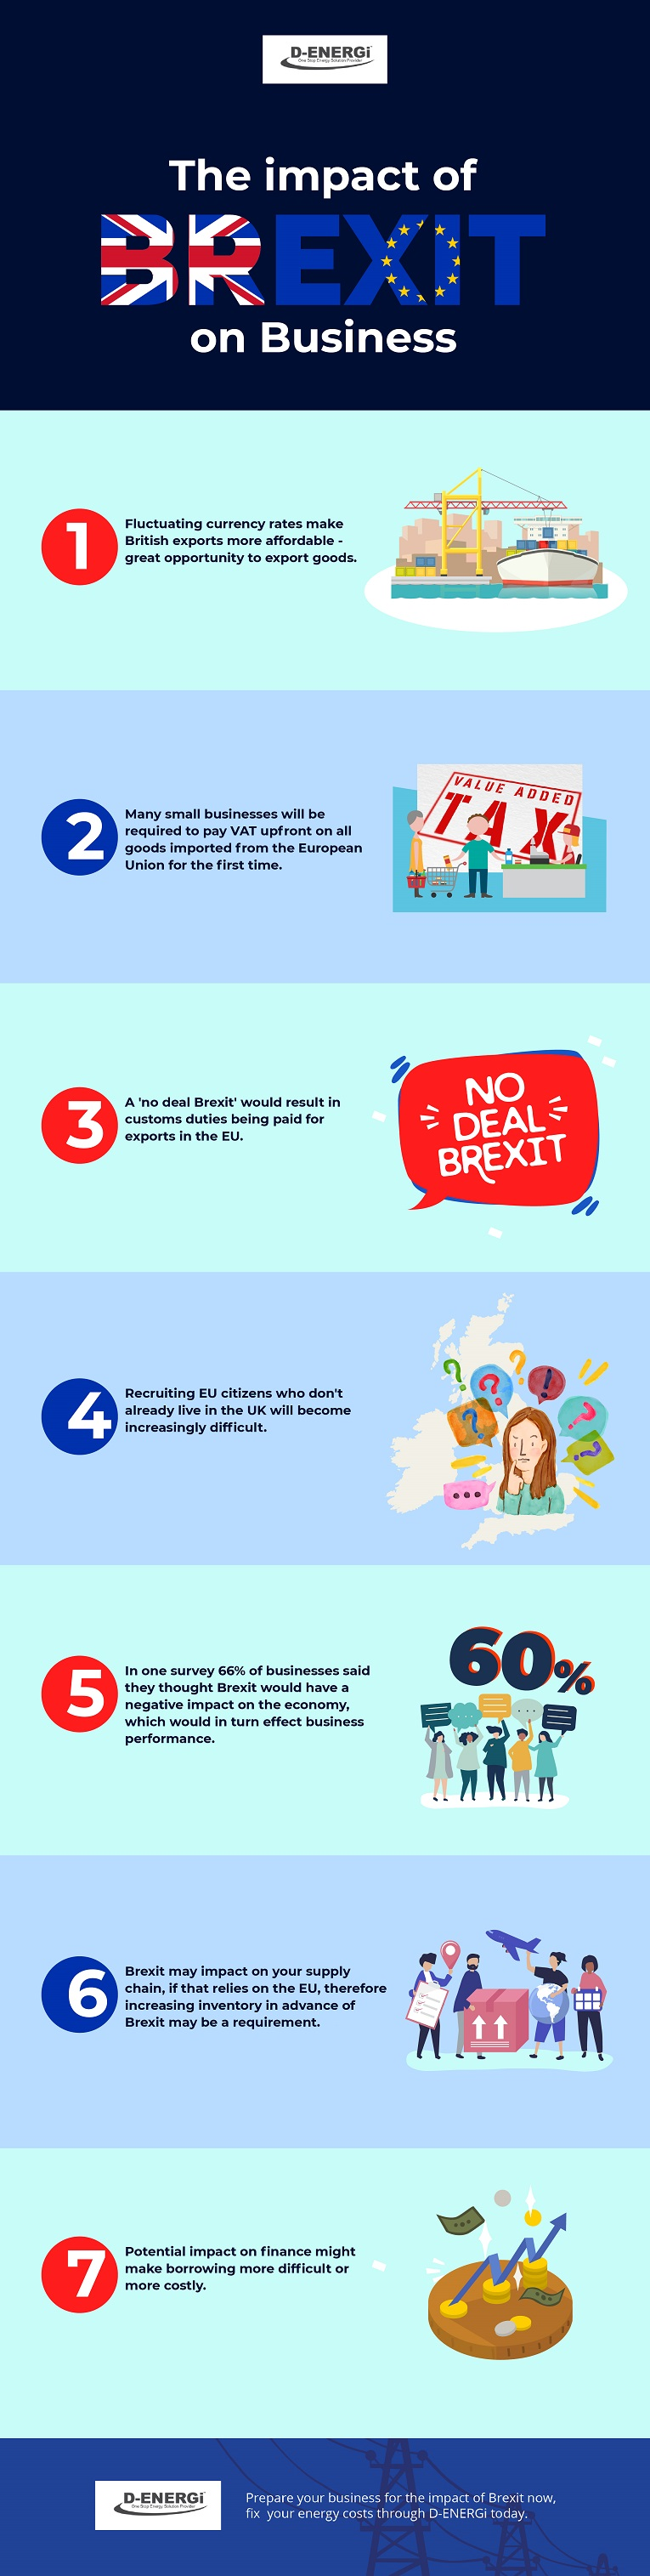 The Impact of Brexit on Business